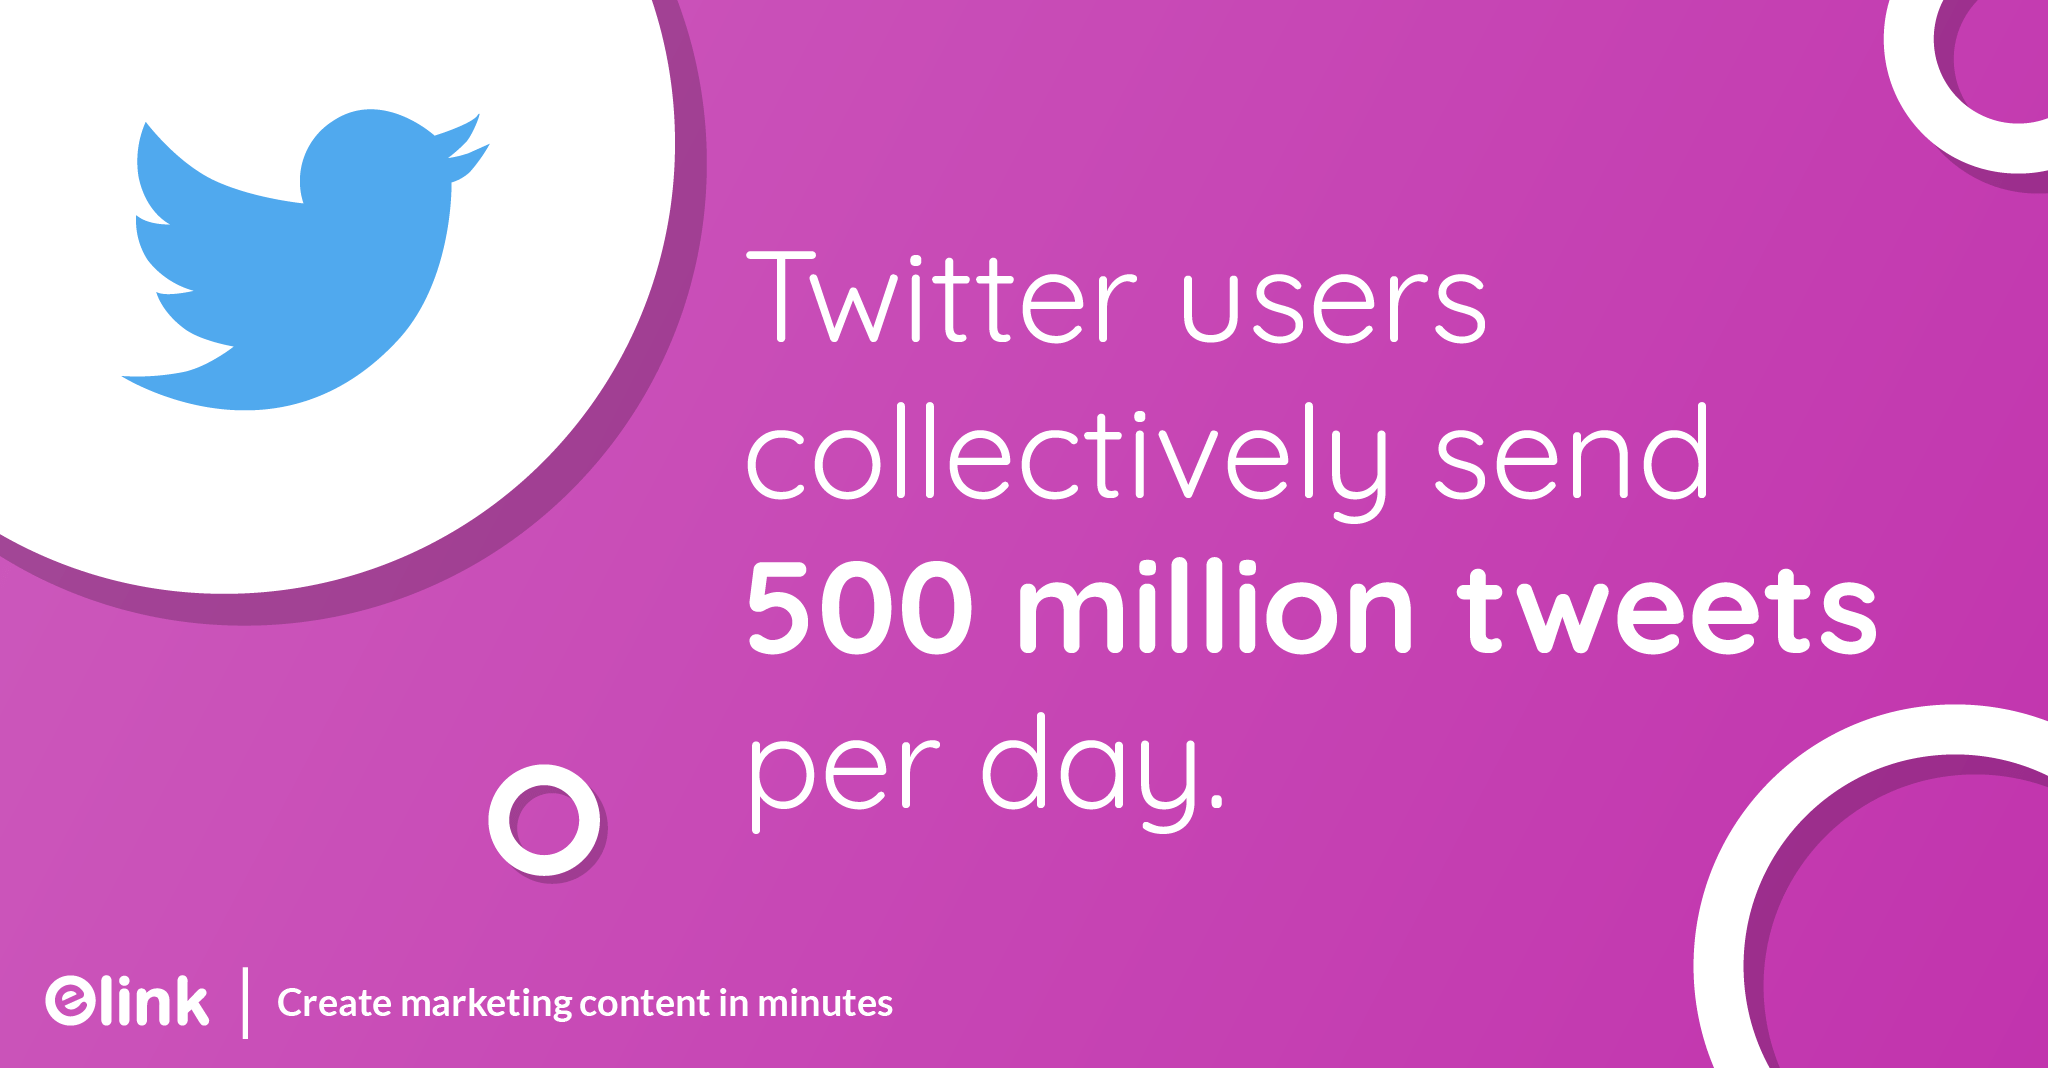 Twitter users collectively send 500 million tweets per day.